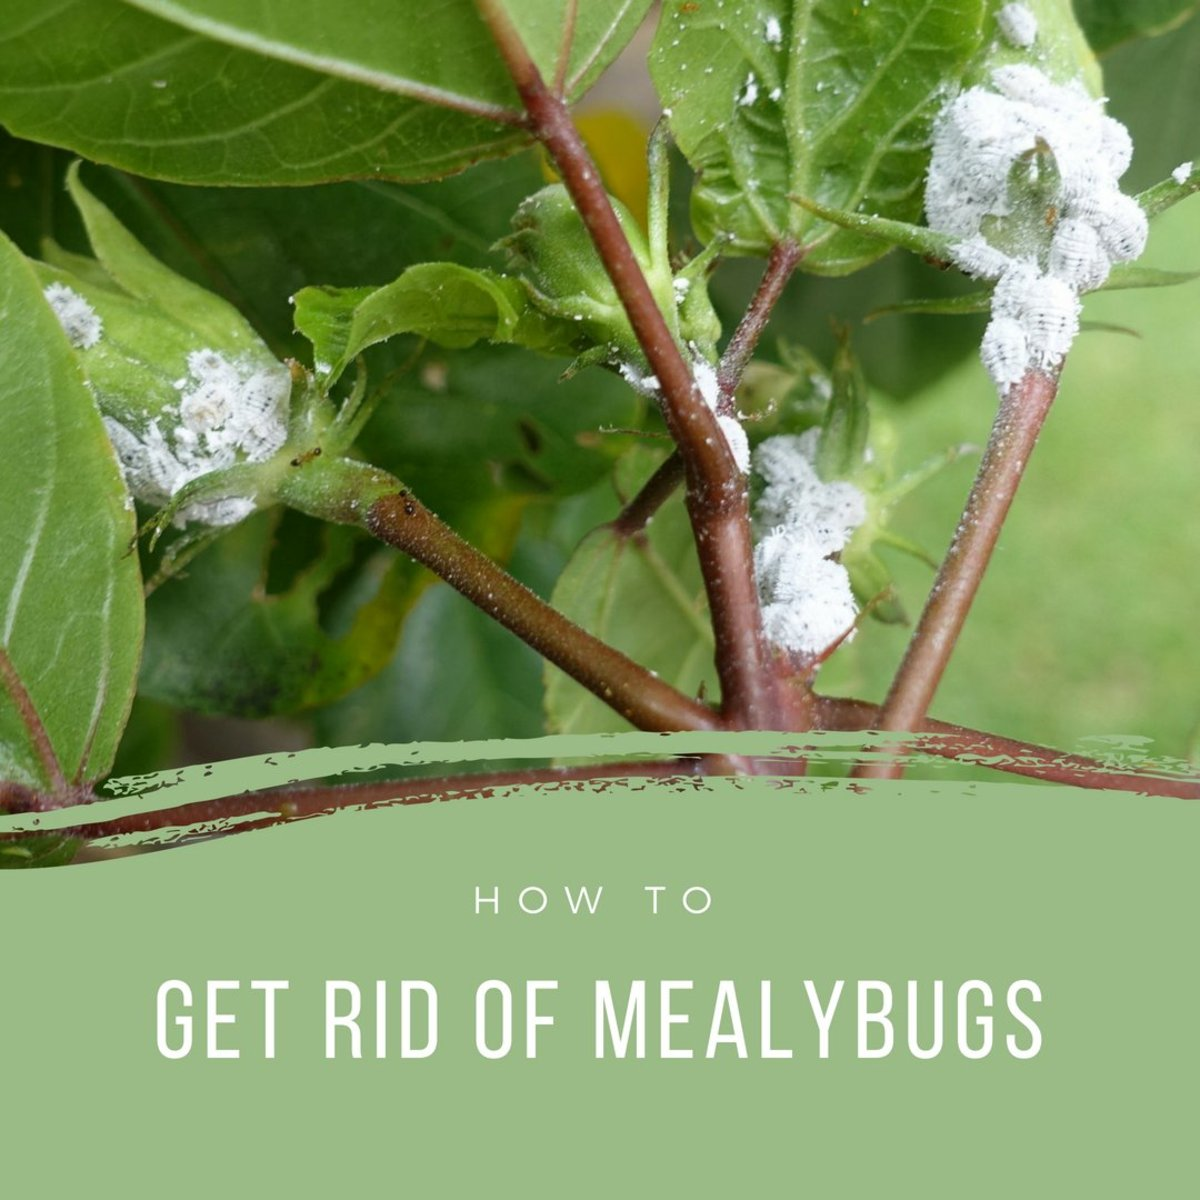 Is White Lint on a Houseplant a Sign of Mealybugs?   Dengarden on fungus on azalea plants, white fungus on plants treatment, fungus white spots on plants, white powdery fungus on plants, white moss on house plants, white powder on house plants, white fungus on potted plants, white sticky substance on plants, eggs on house plants, weird fungi plants, downy mildew tomato plants, powdery mildew on plants, diseases on jade plants, fungus in house plants, white fungus on zucchini plants, white mold plants, white fungus on aquarium plants, white sticky fungus on plants, white garden fungus, types of fungus on plants,